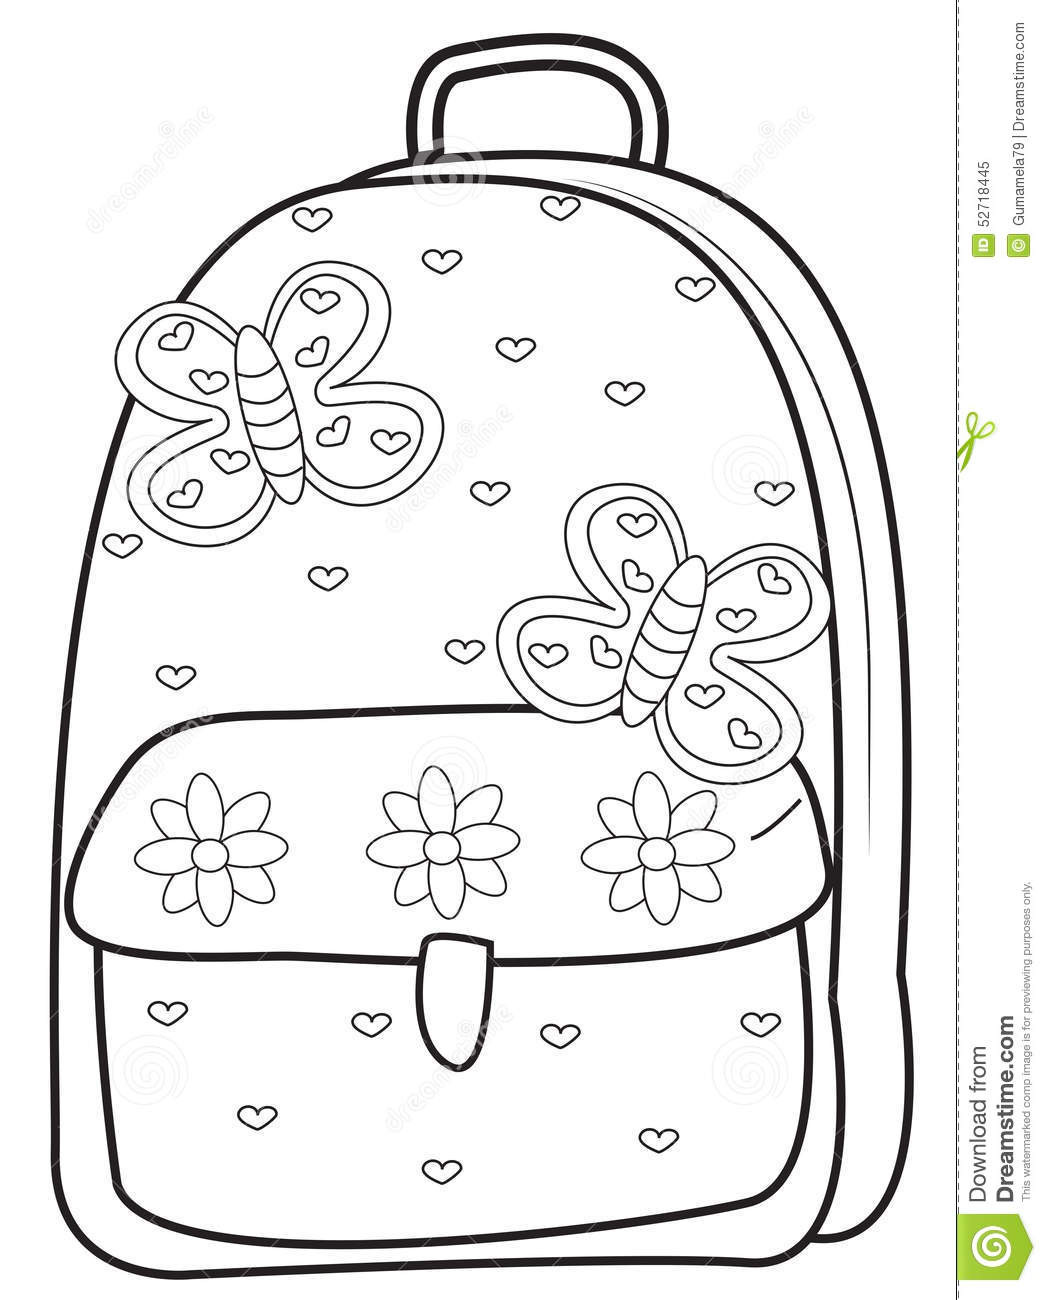 Coloring Book Bag  Backpack coloring page stock illustration Image of clip